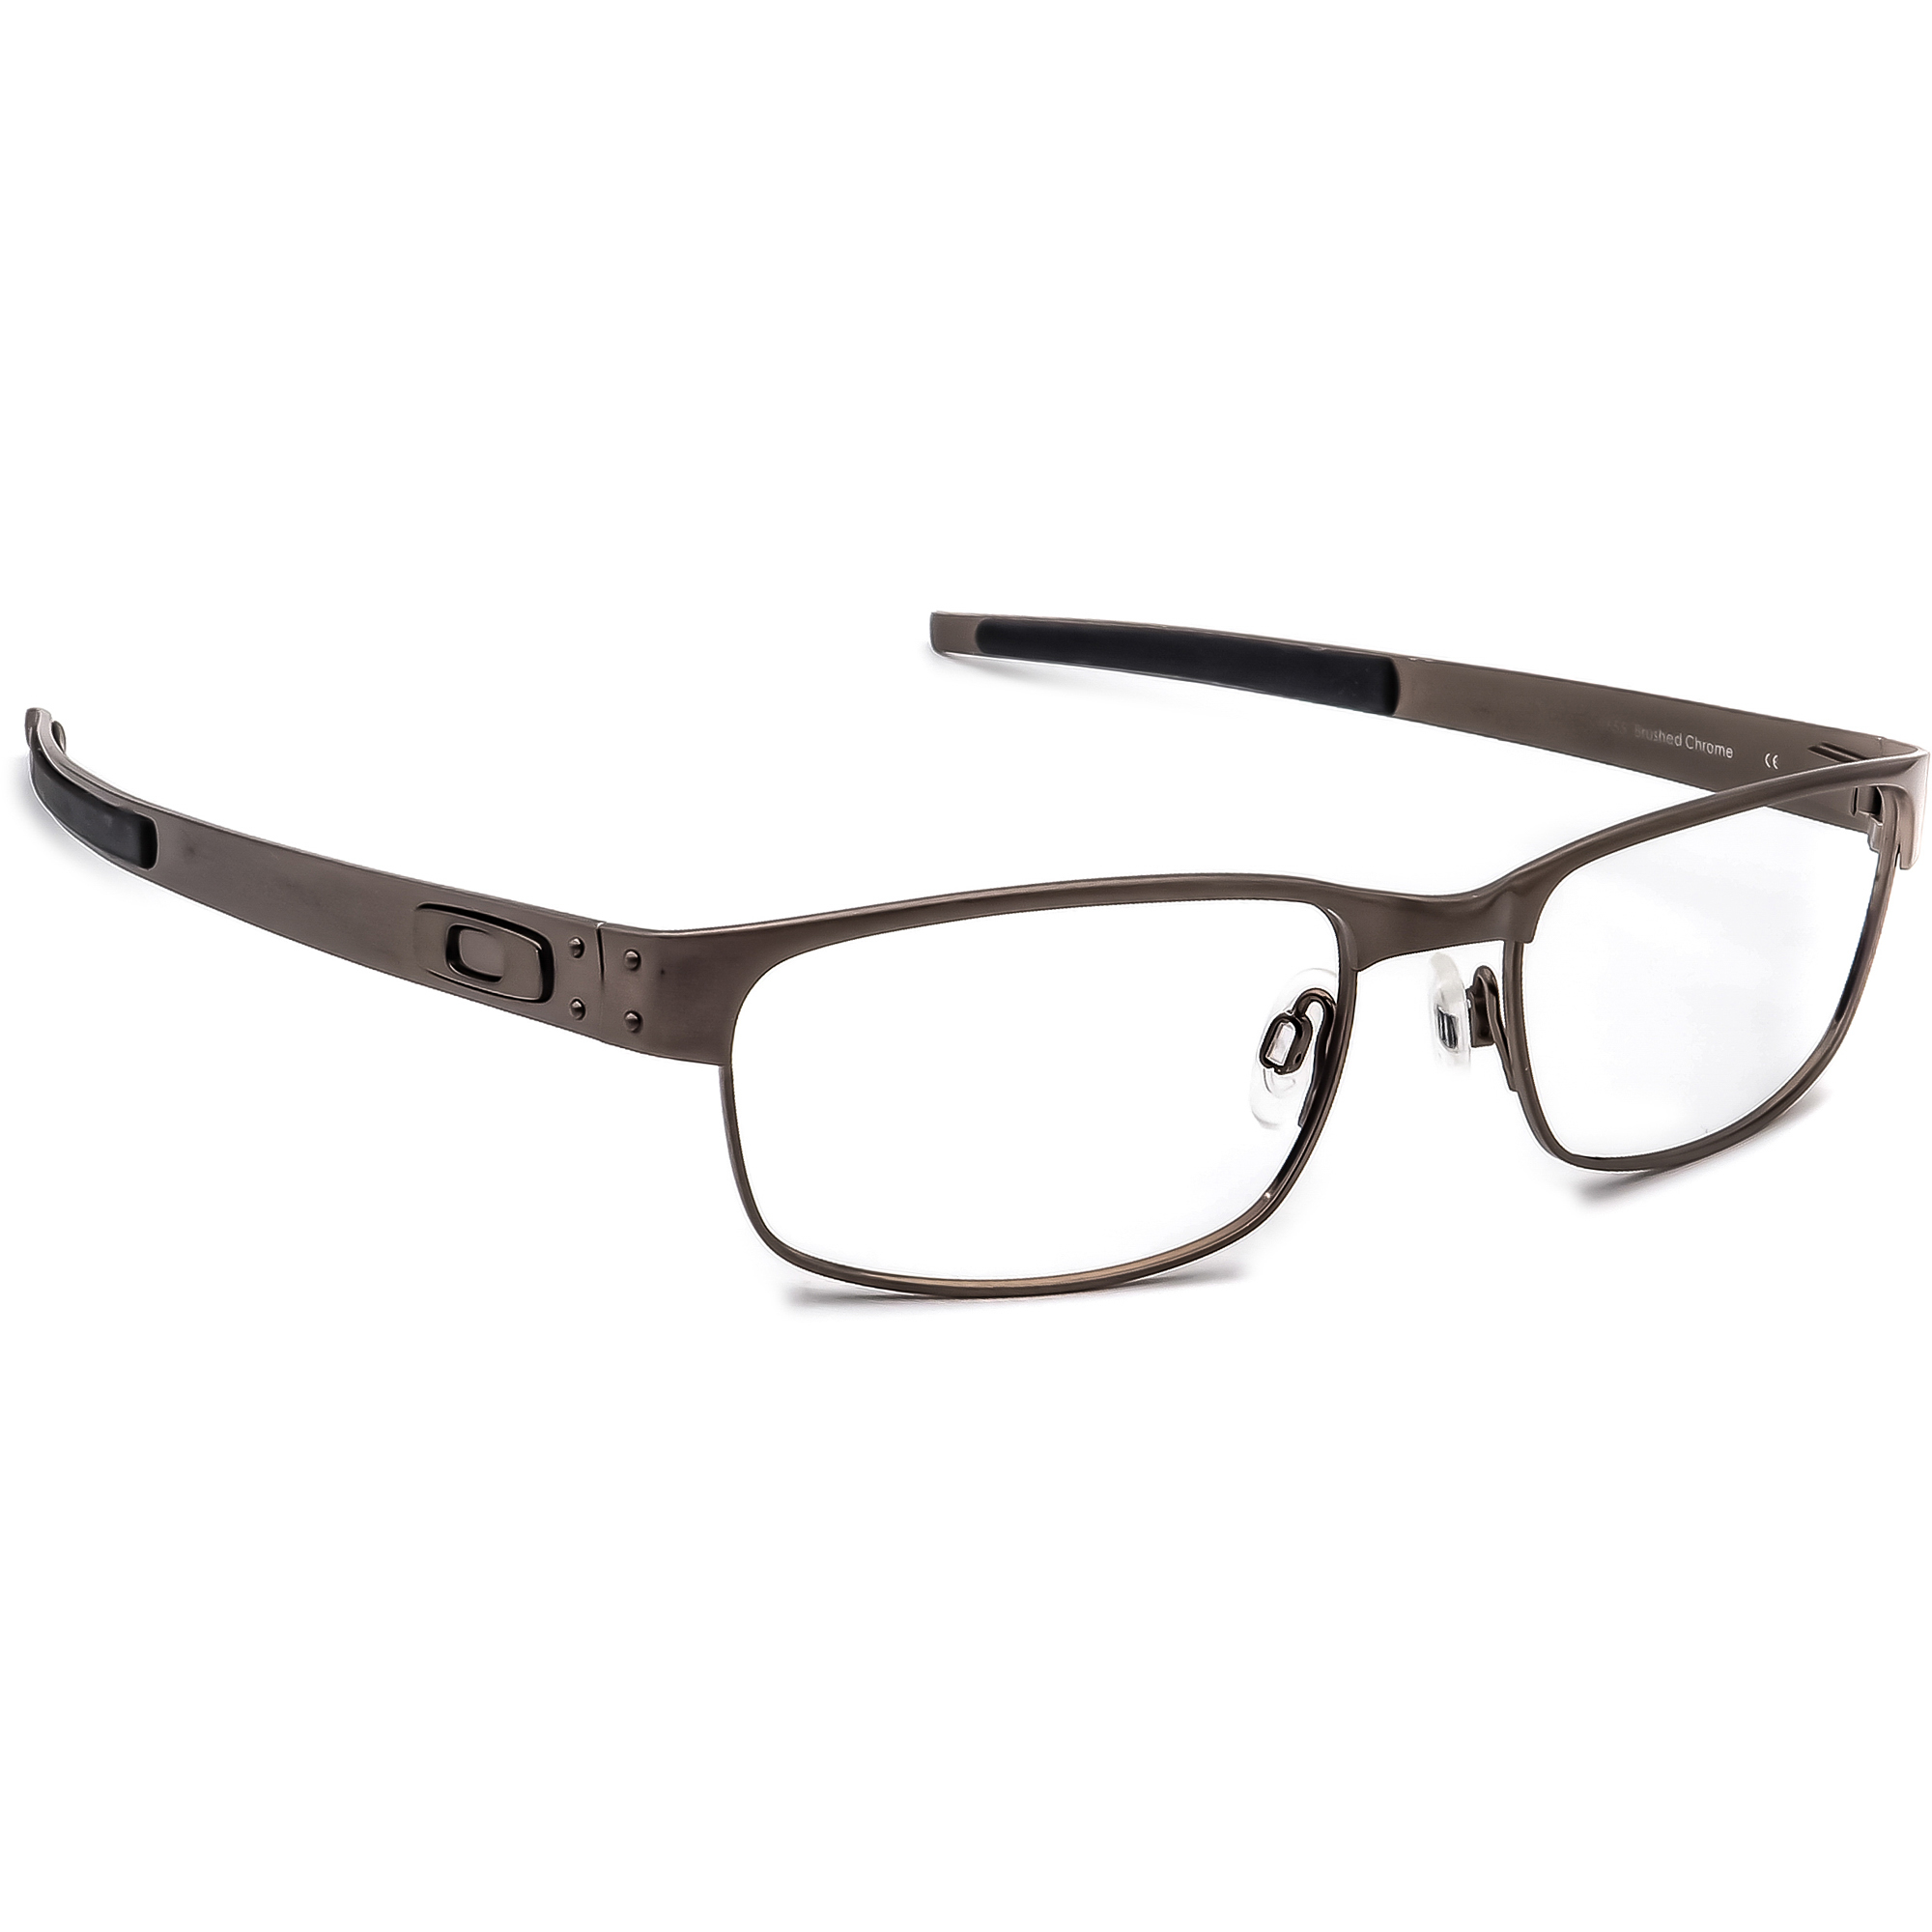 Oakley OX5038-0655 Metal Plate Eyeglasses